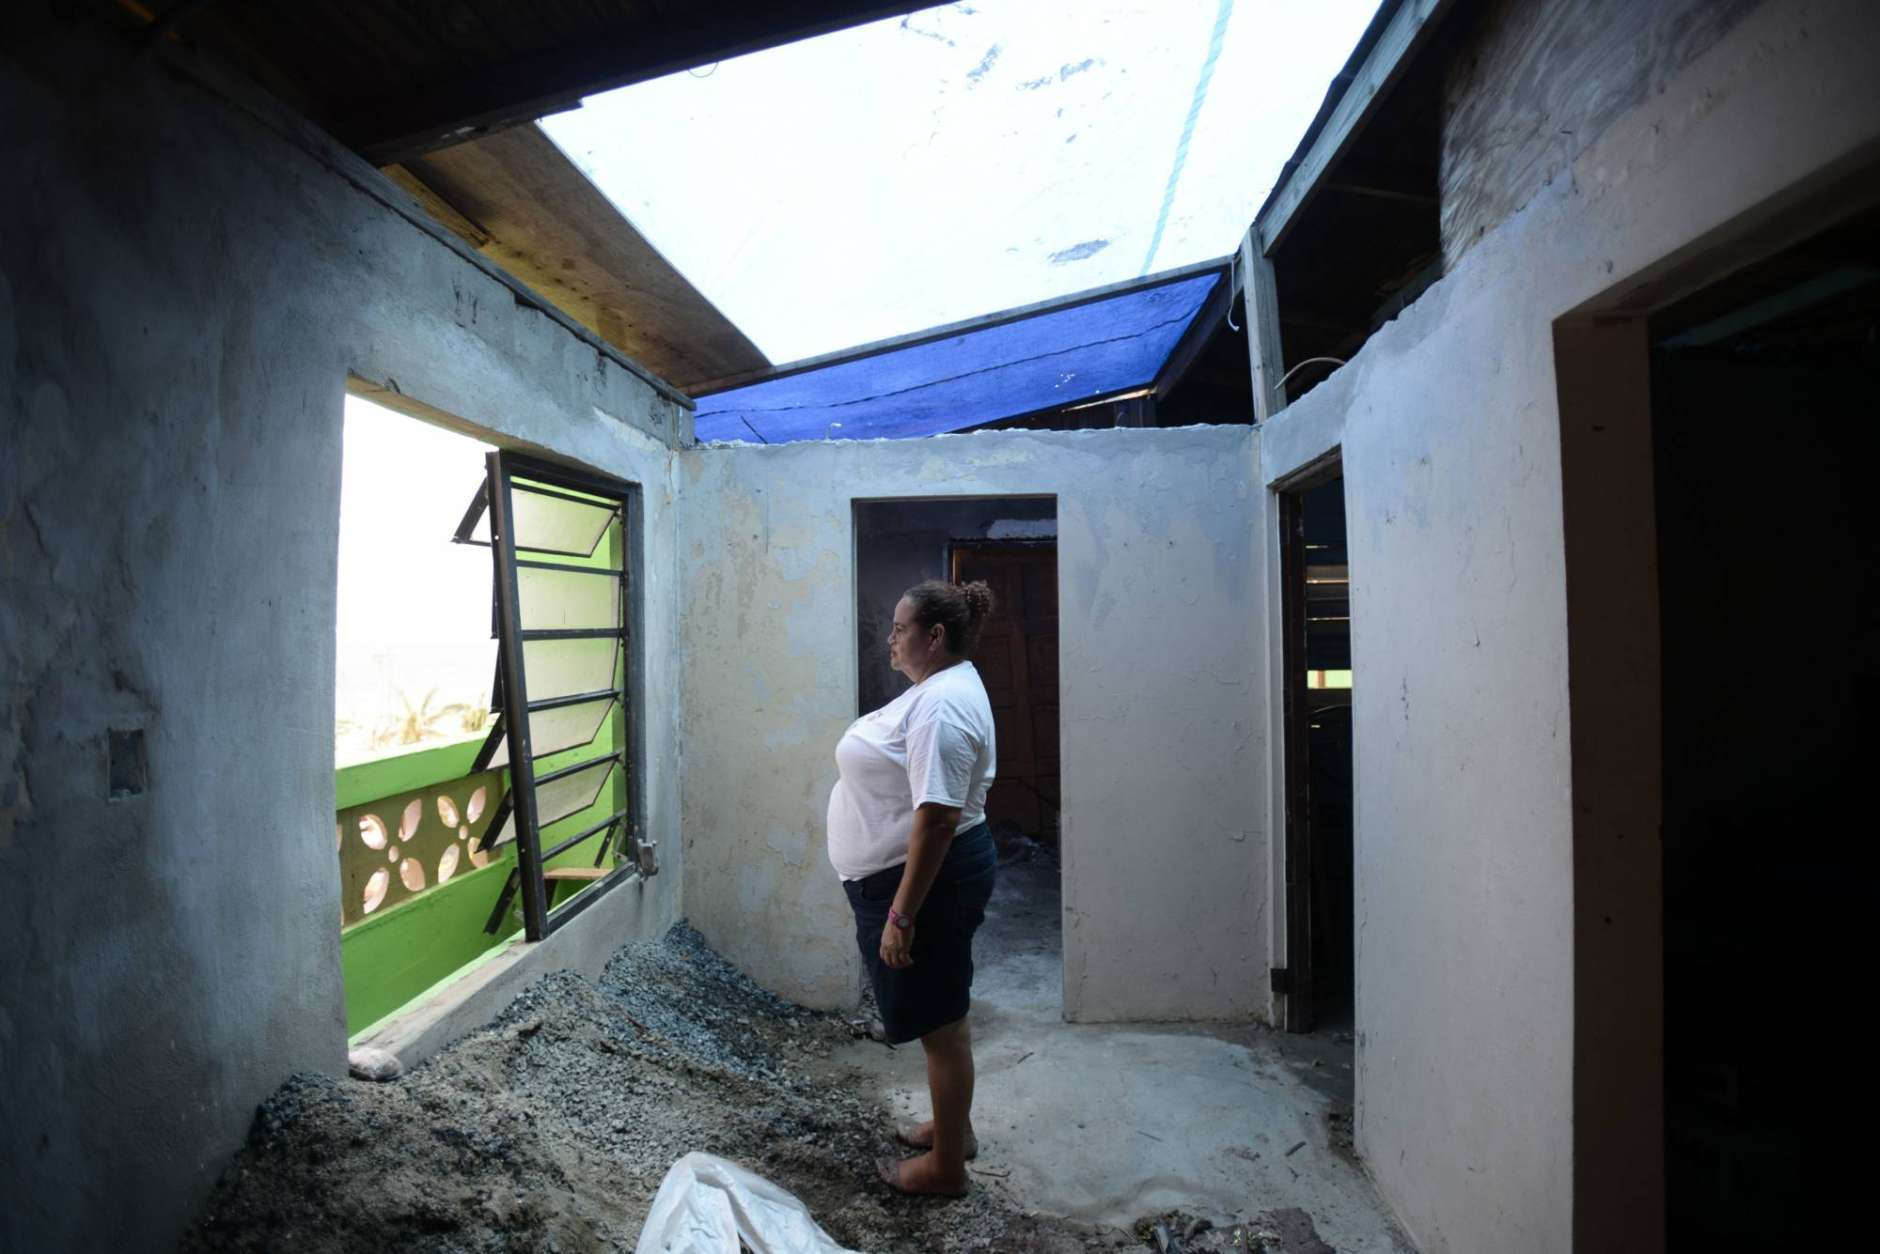 La Perla resident Maritza Rosado stands inside her roofless home after Hurricane Maria, in San Juan, Puerto Rico, Monday, Sept. 25, 2017. The island territory of more than 3 million U.S. citizens is reeling in the devastating wake of Hurricane Maria. (AP Photo/Carlos Giusti)